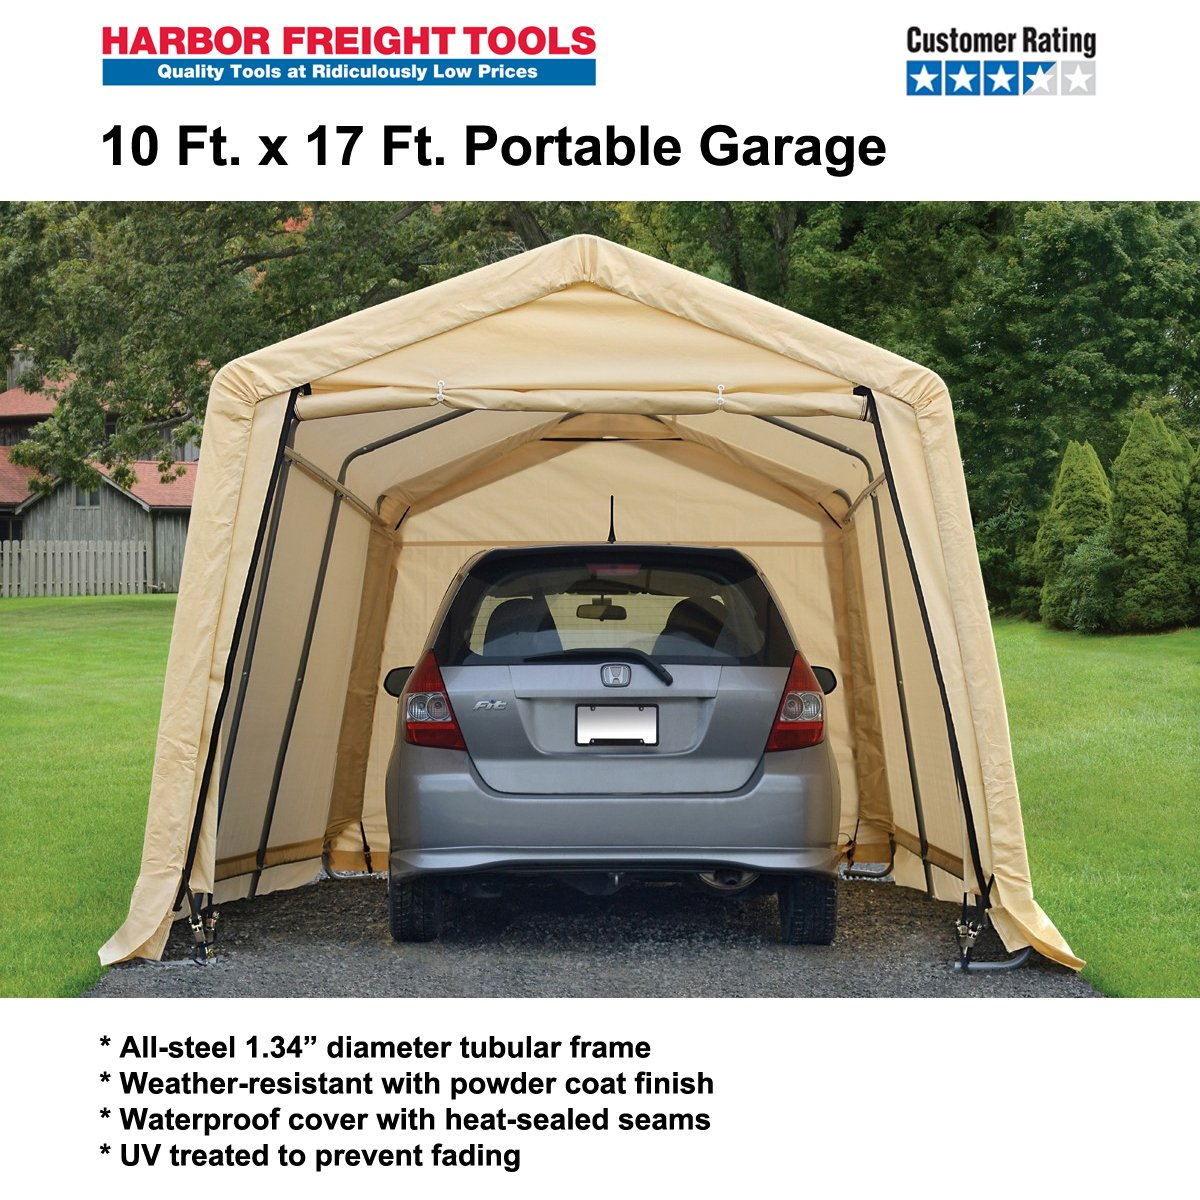 Harbor Freight Tools On Twitter 10 X 17 Port Garage Lasted